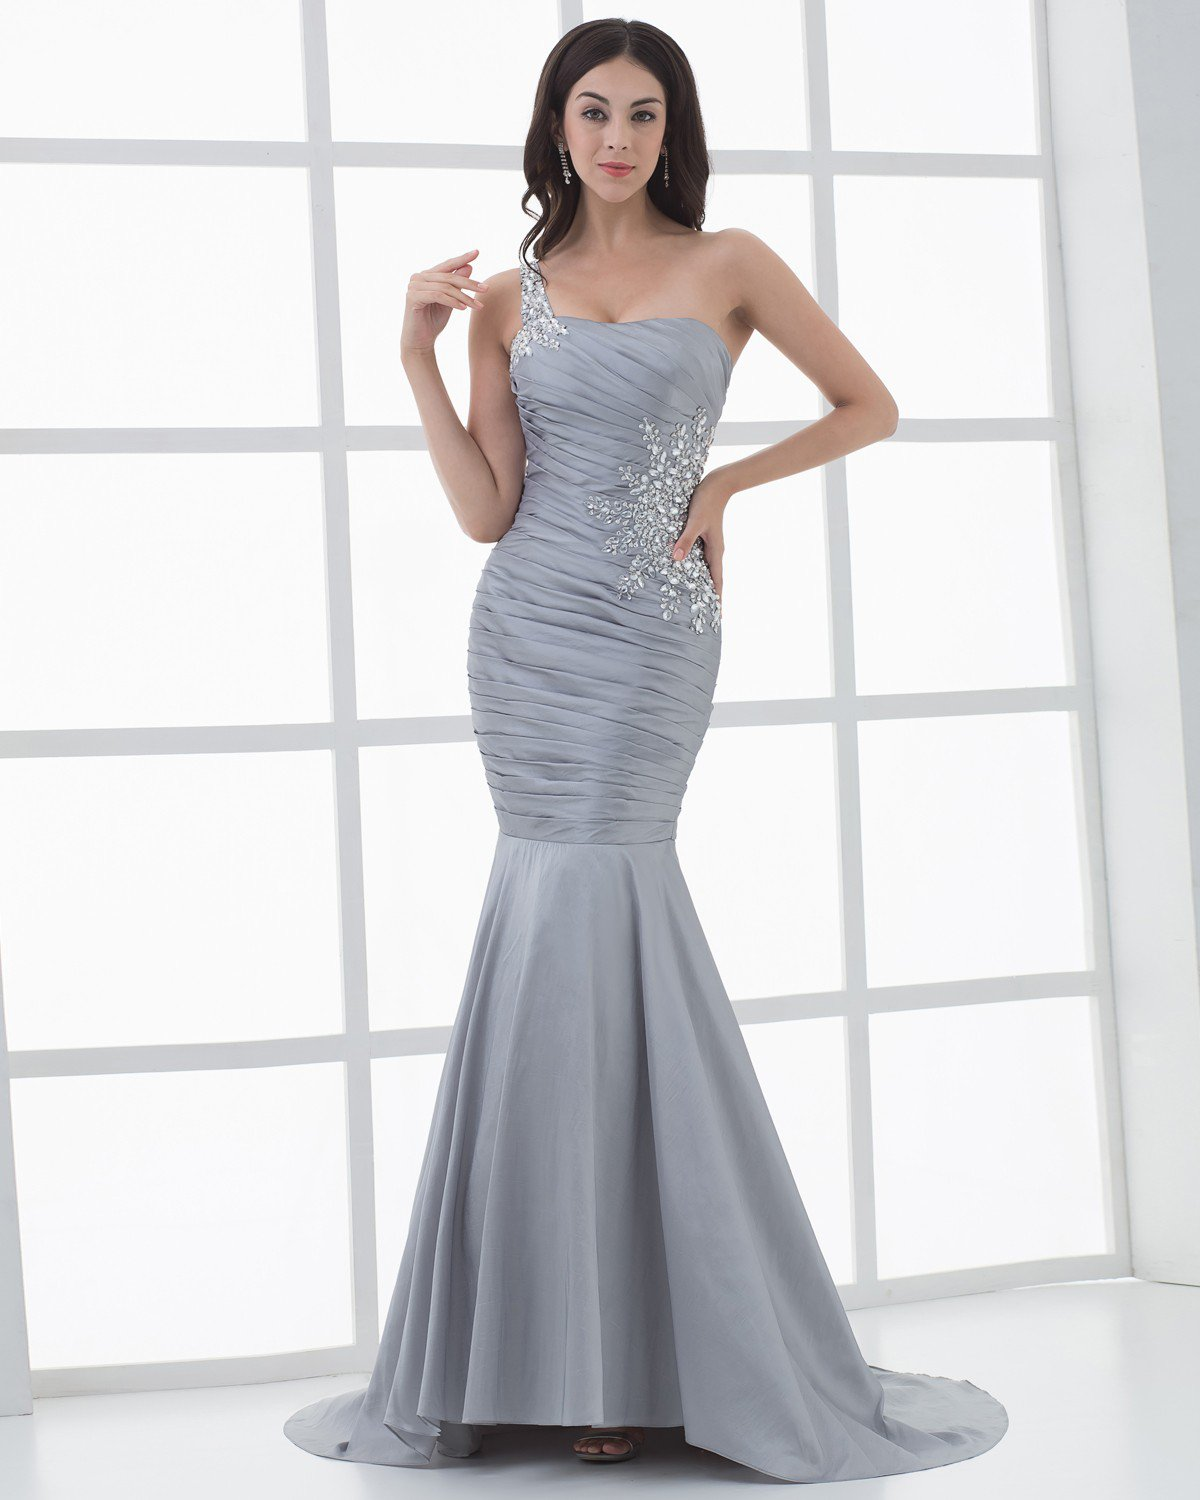 Satin One Shouder Ruffles Beading Mermaid Floor Length Women's Evening Prom Dress